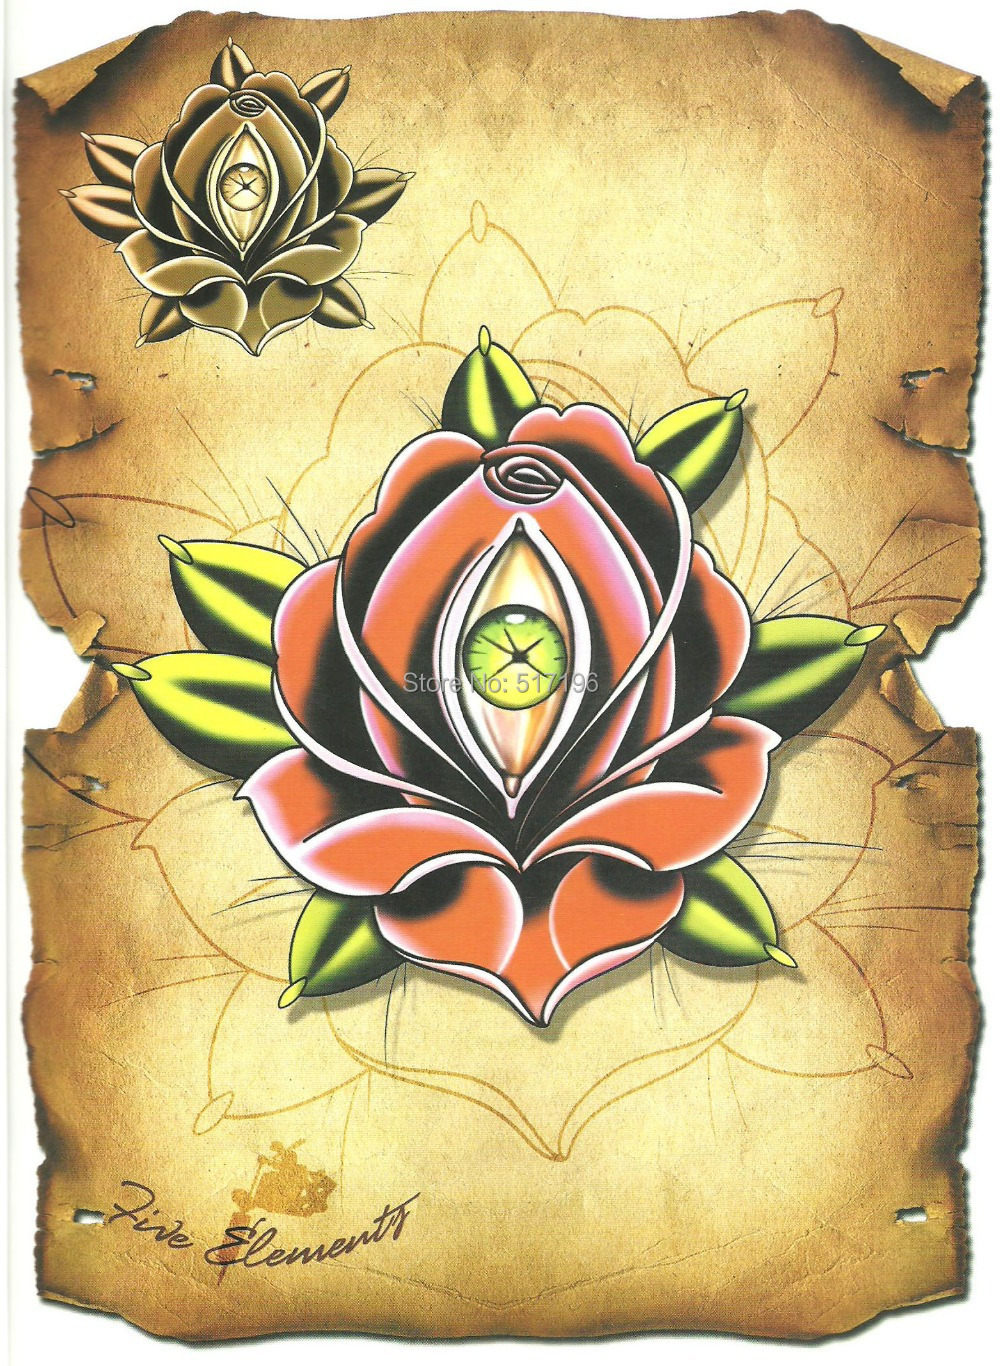 Pdf Format Tattoo Book The Five Element Tattoo Book Rose Ideas And Designs